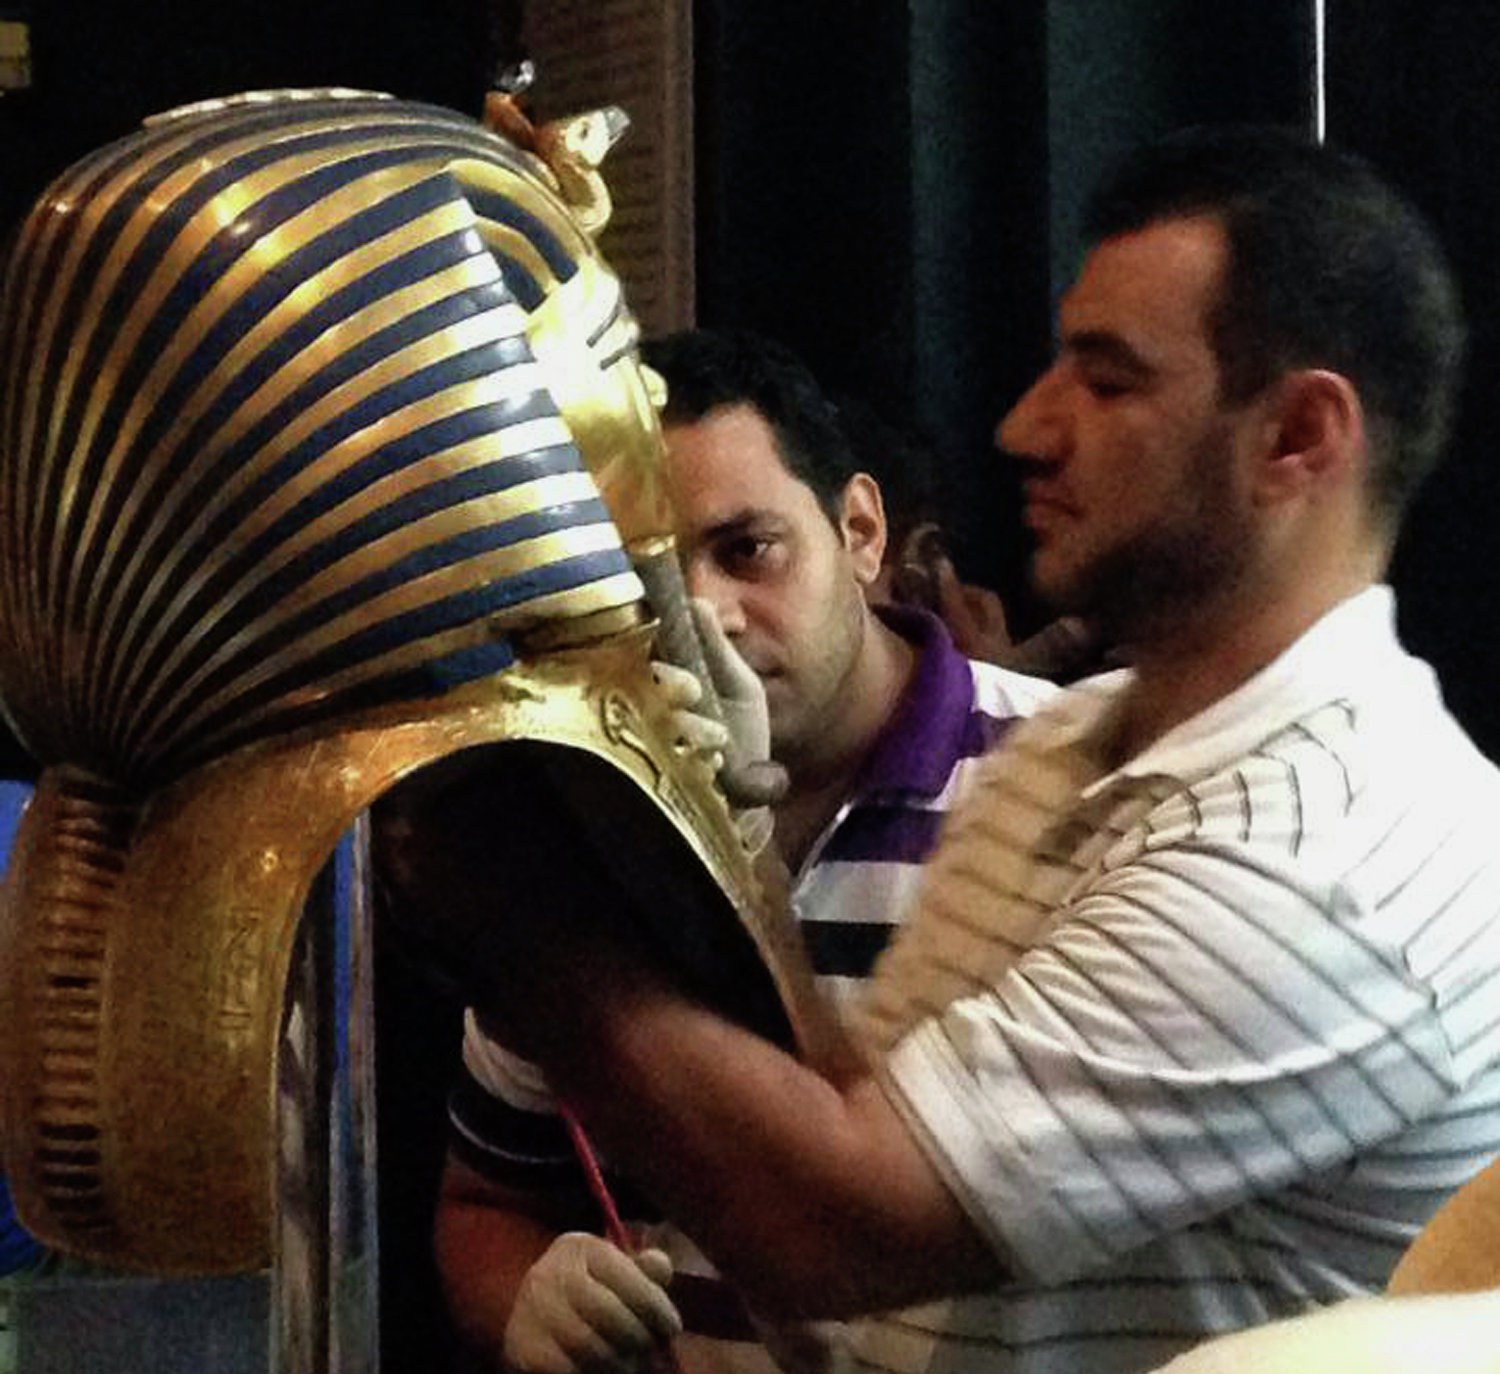 In this Aug. 12, 2014, photo provided by Jacqueline Rodriguez, a man glues the beard part of King Tutankhamun's mask back on at the Egyptian Museum in Cairo, Egypt